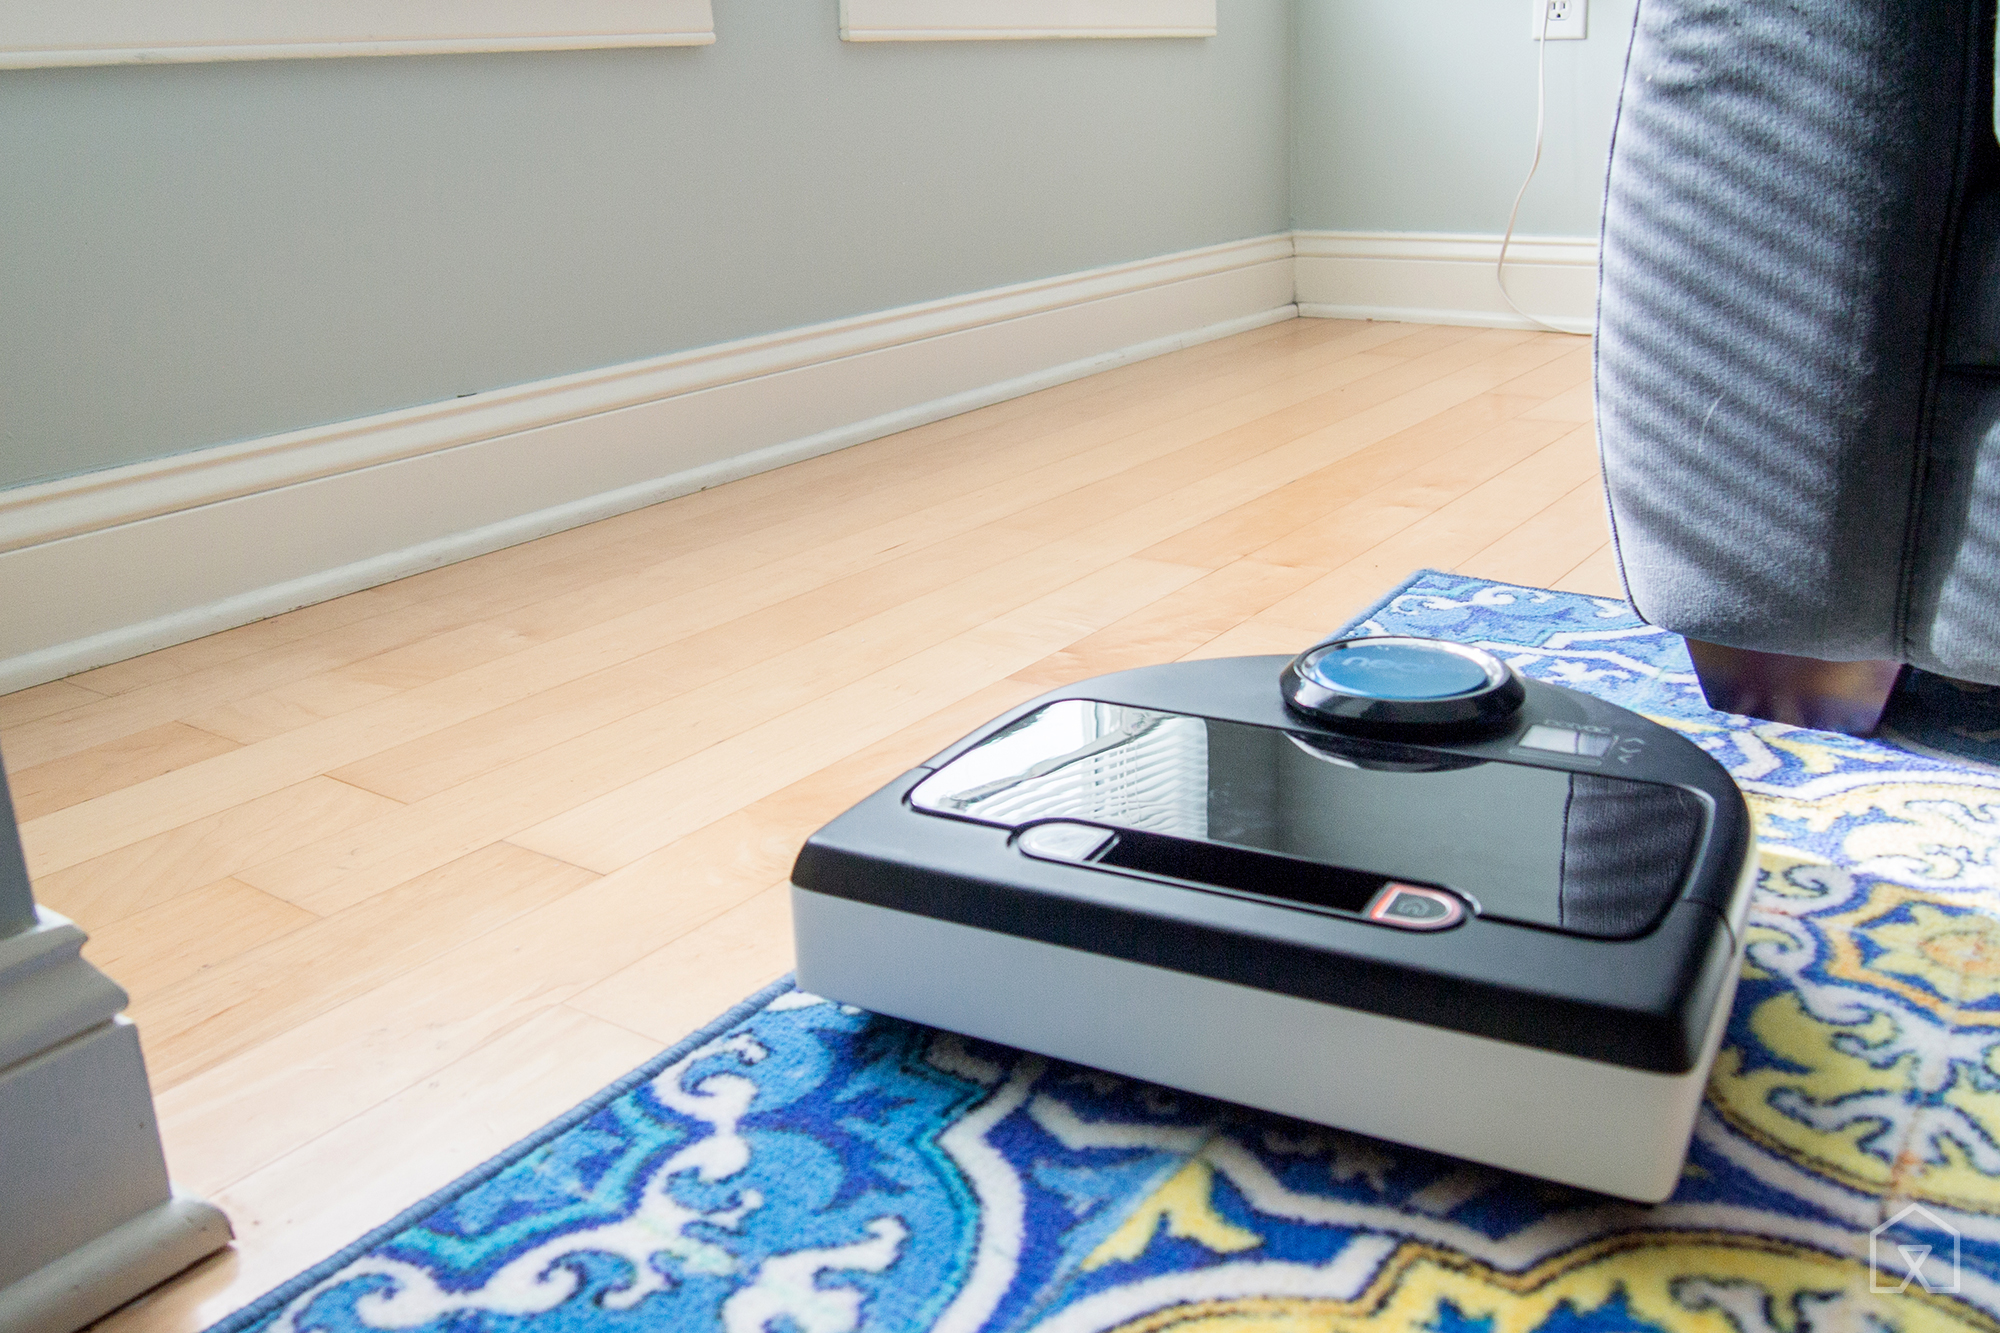 The Best Robot Vacuum - What is the best robot floor cleaner